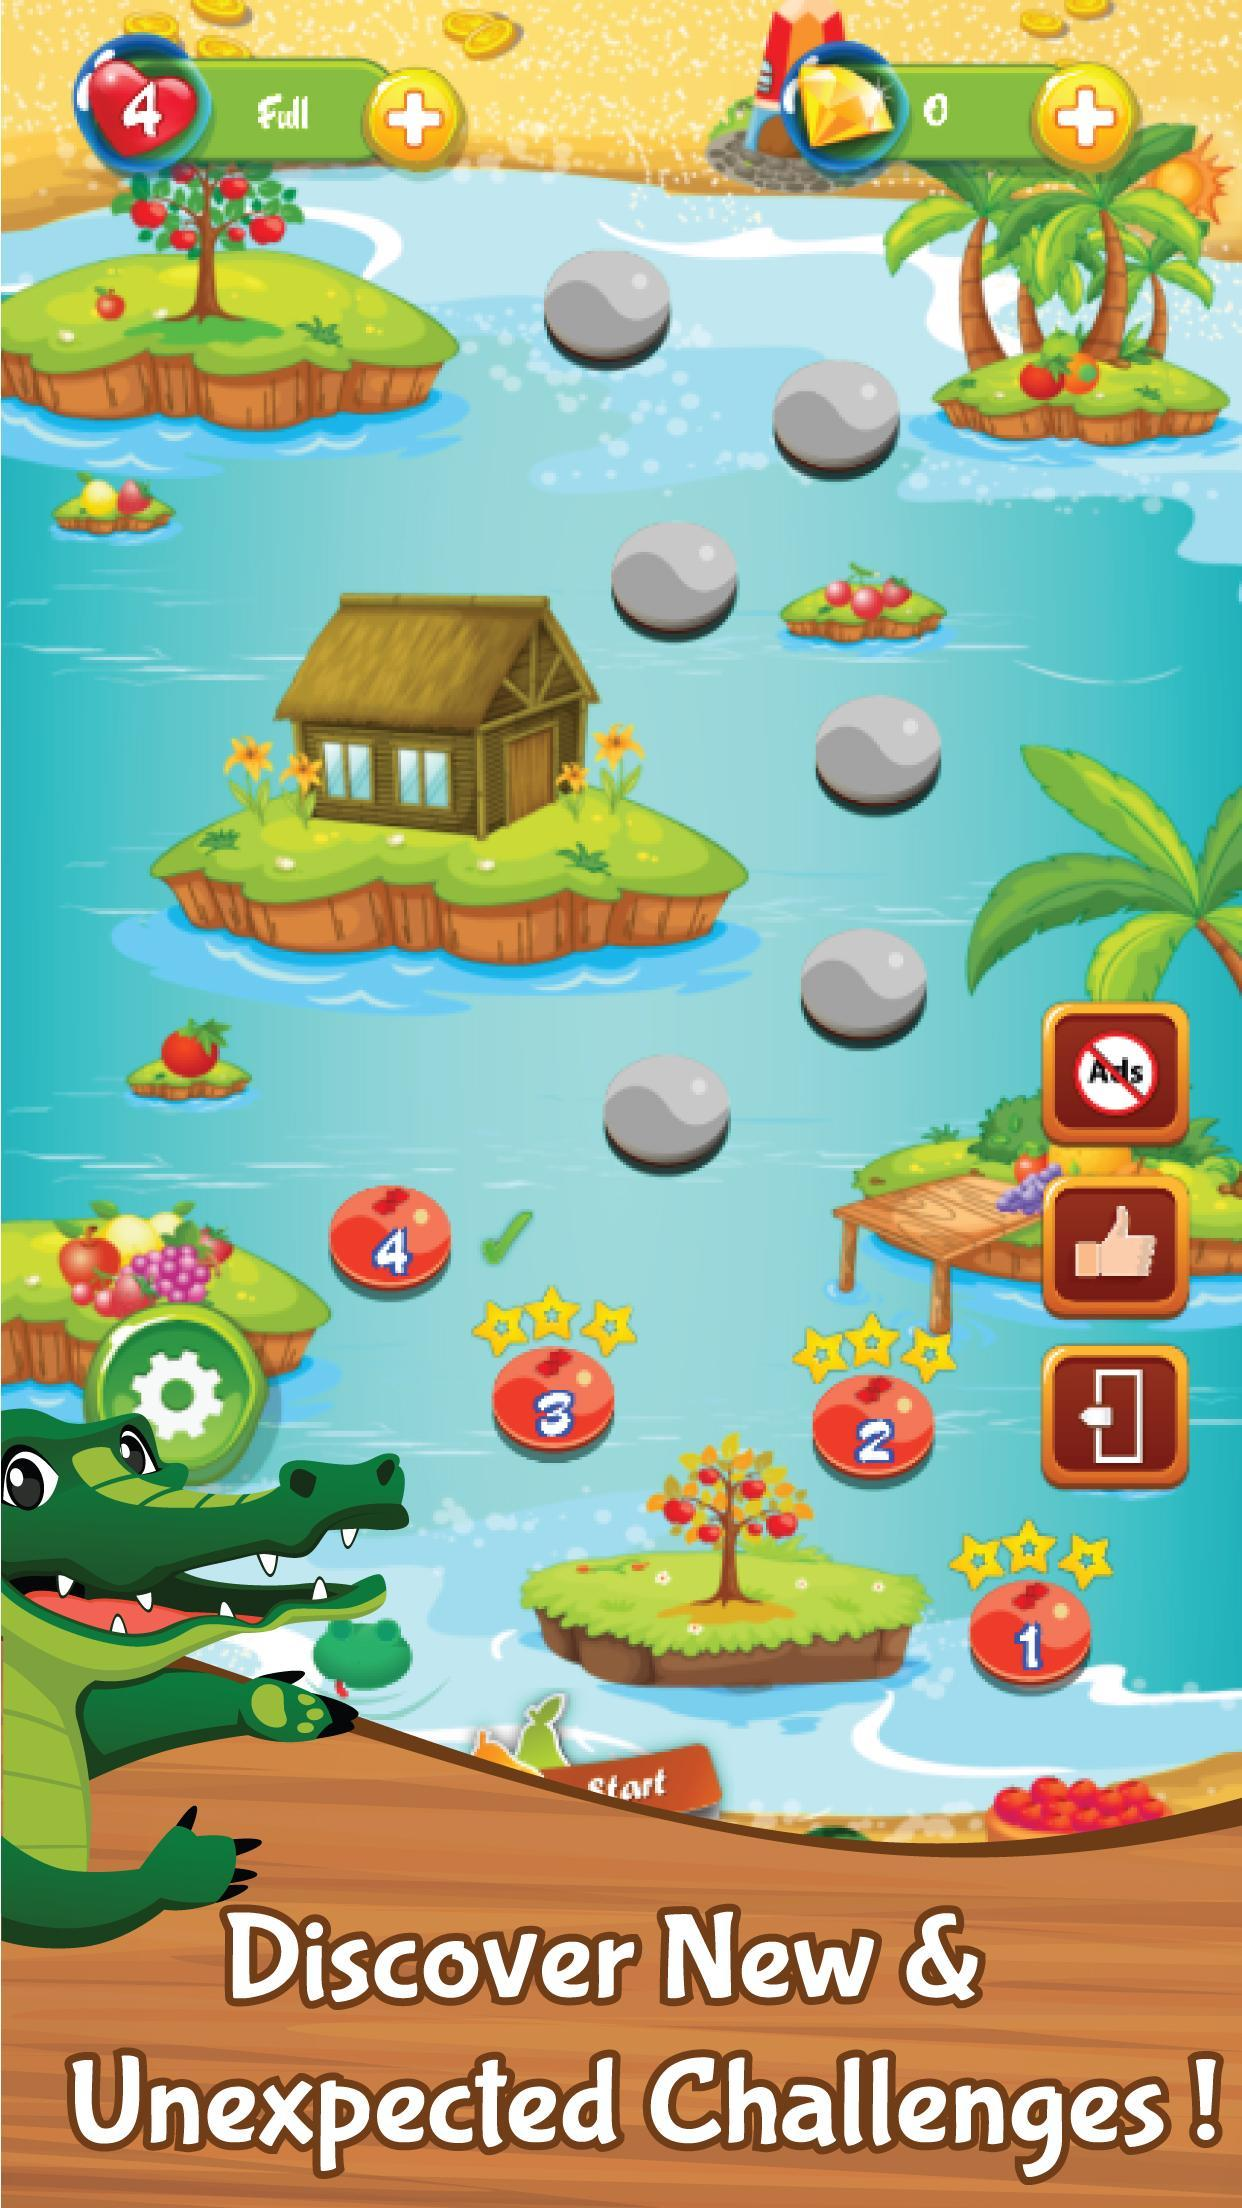 Match 3 Fruit Wonderland Puzzle - Jungle Adventure 1.101 Screenshot 2